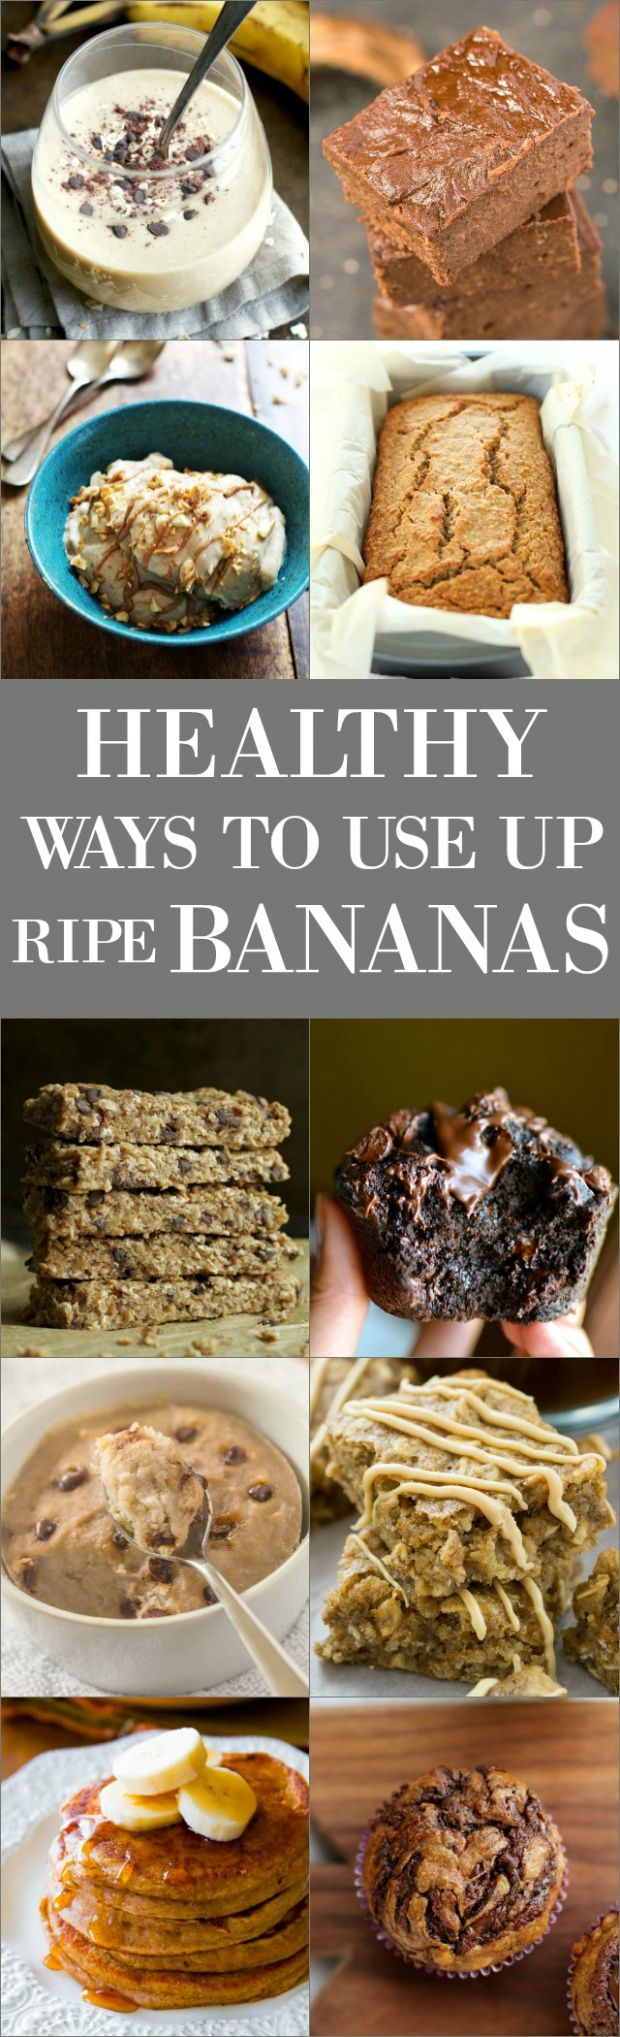 8 Healthy Ways to Use Up Those Ripe Bananas | running with spoons